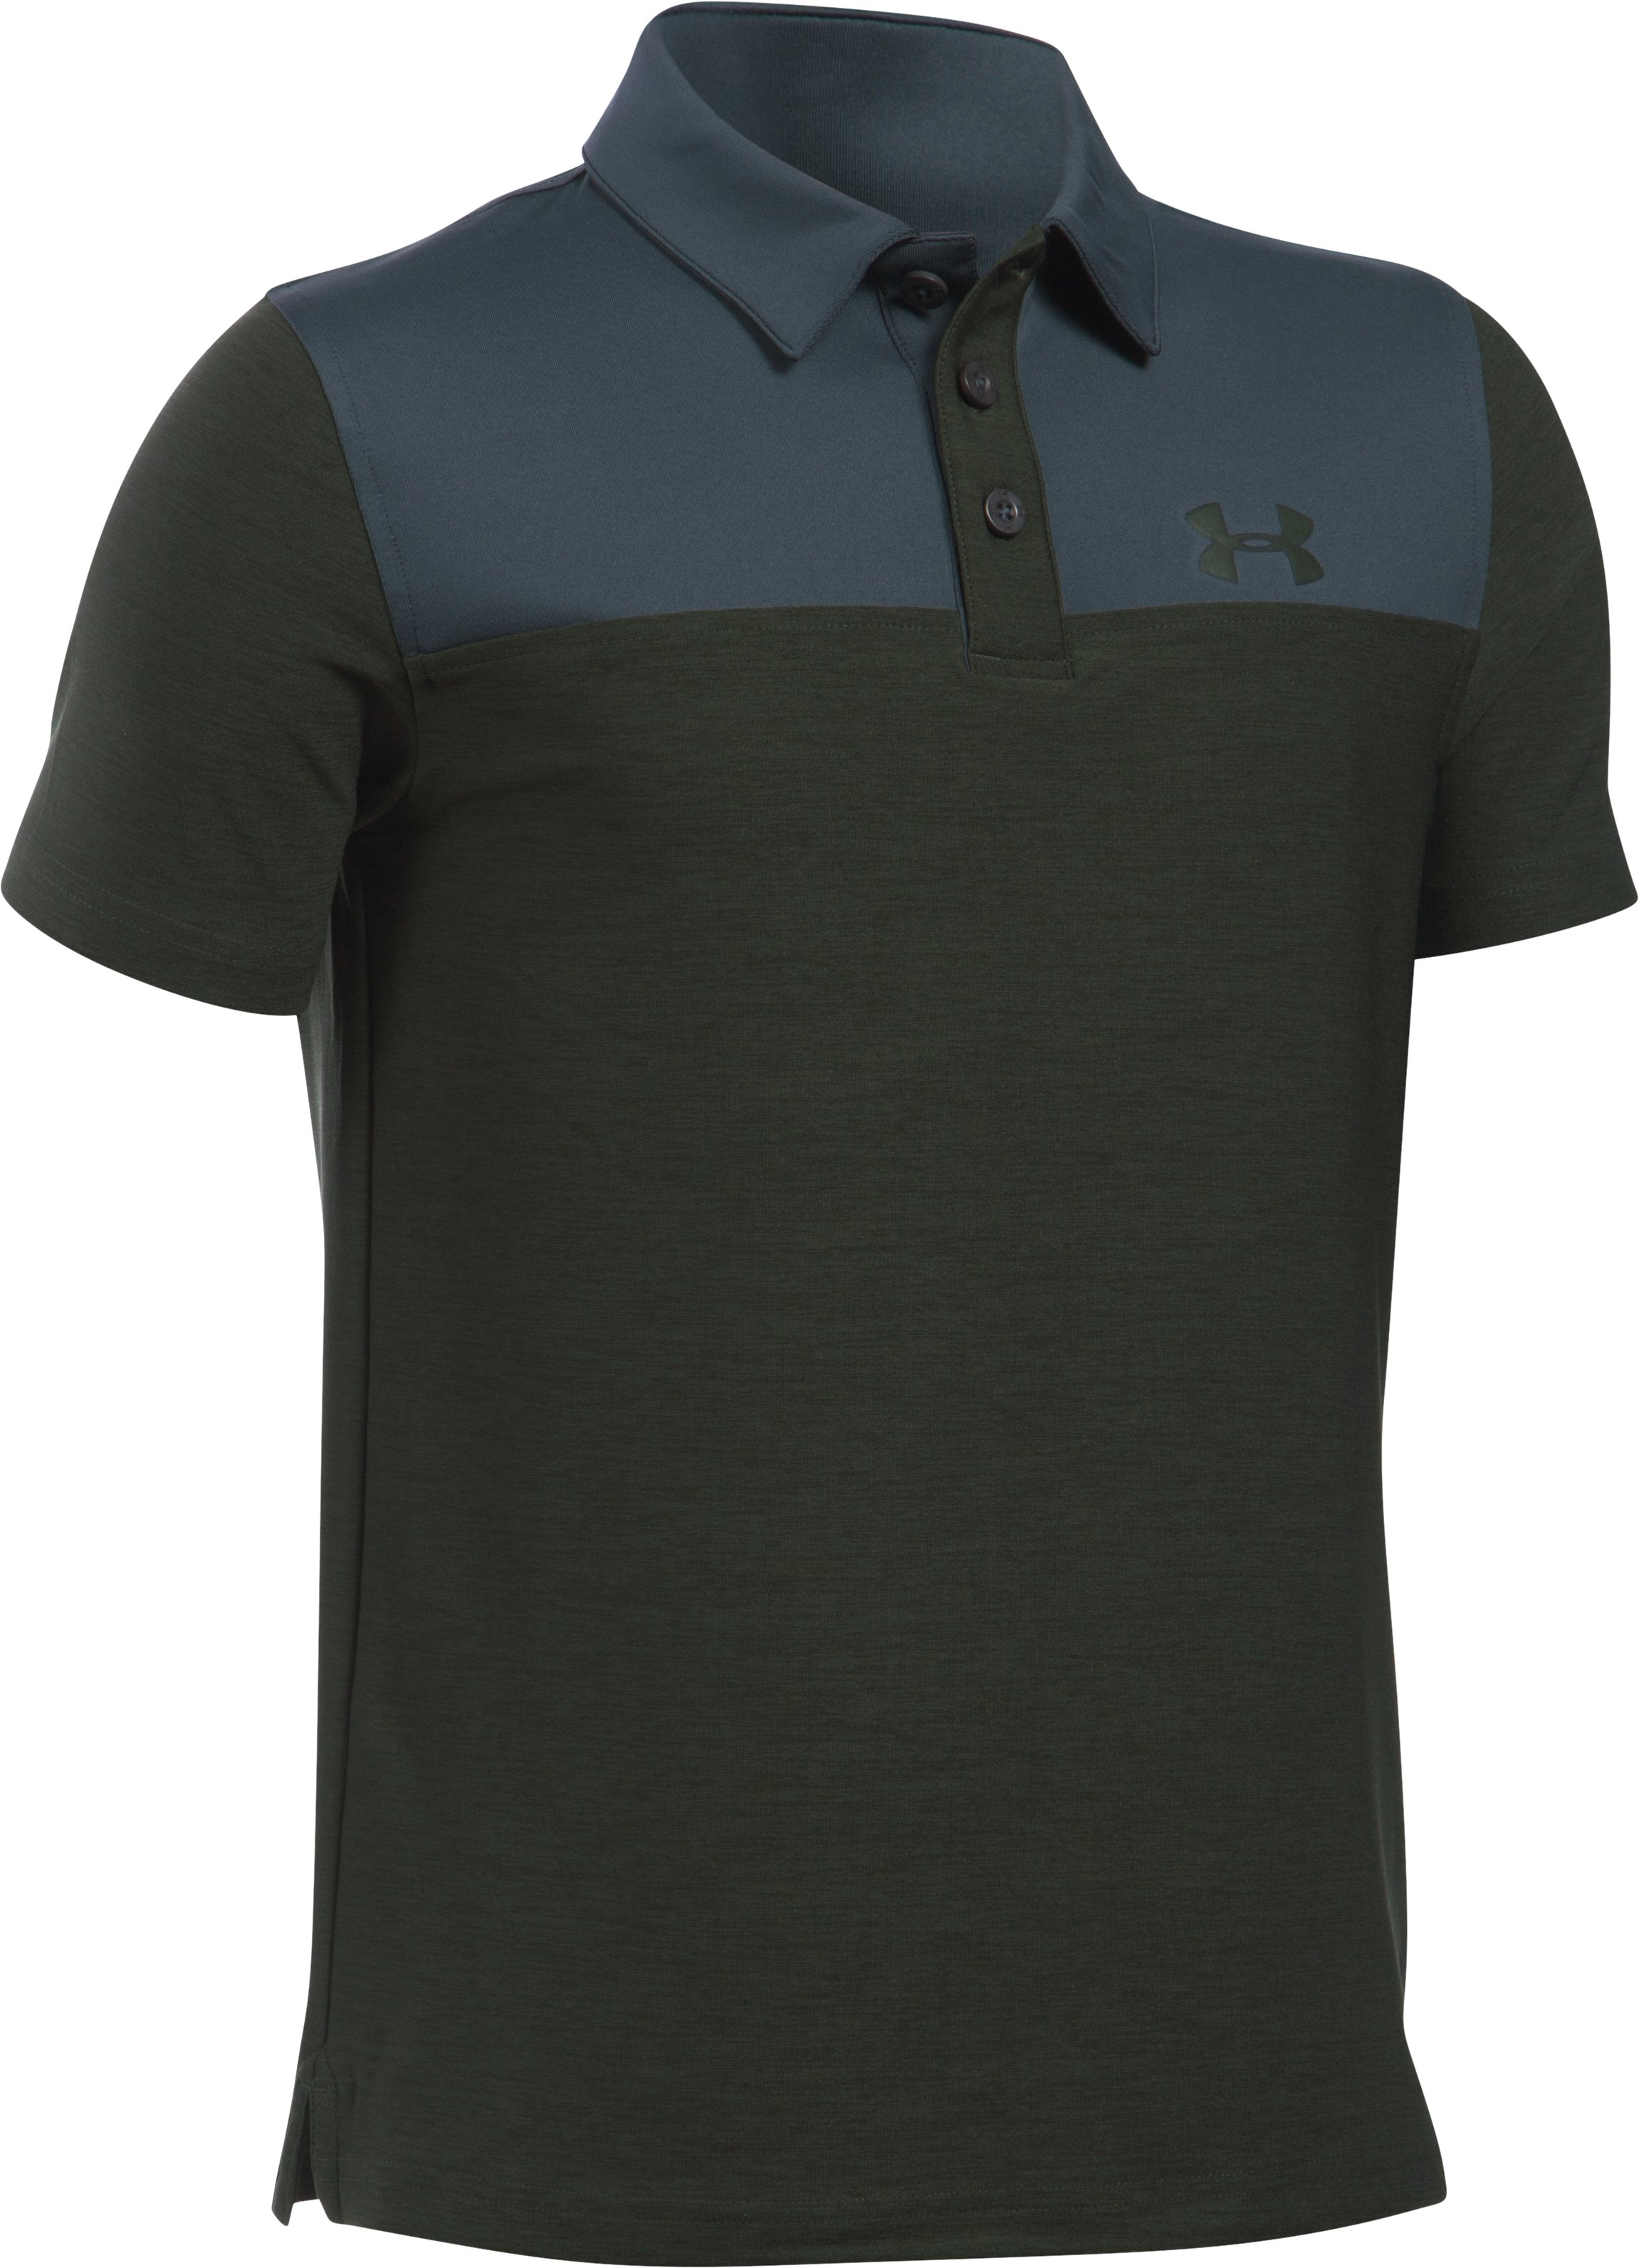 Boys' UA Match Play Blocked Polo , Artillery Green